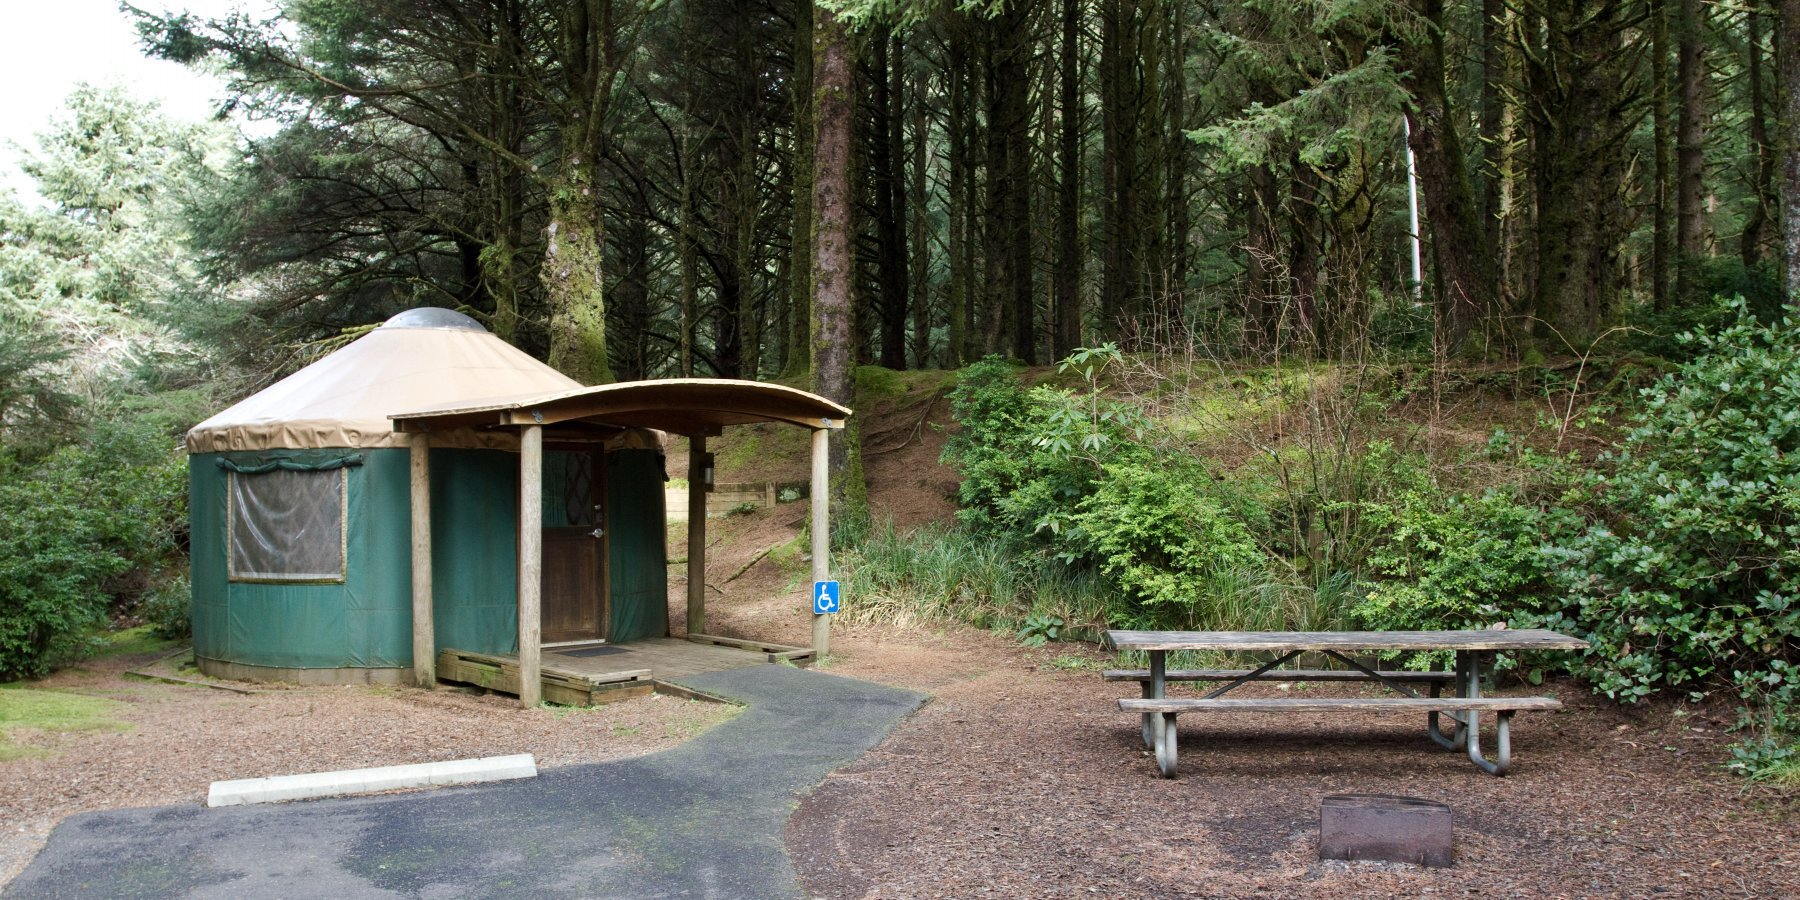 carl g. washburne memorial state park campground